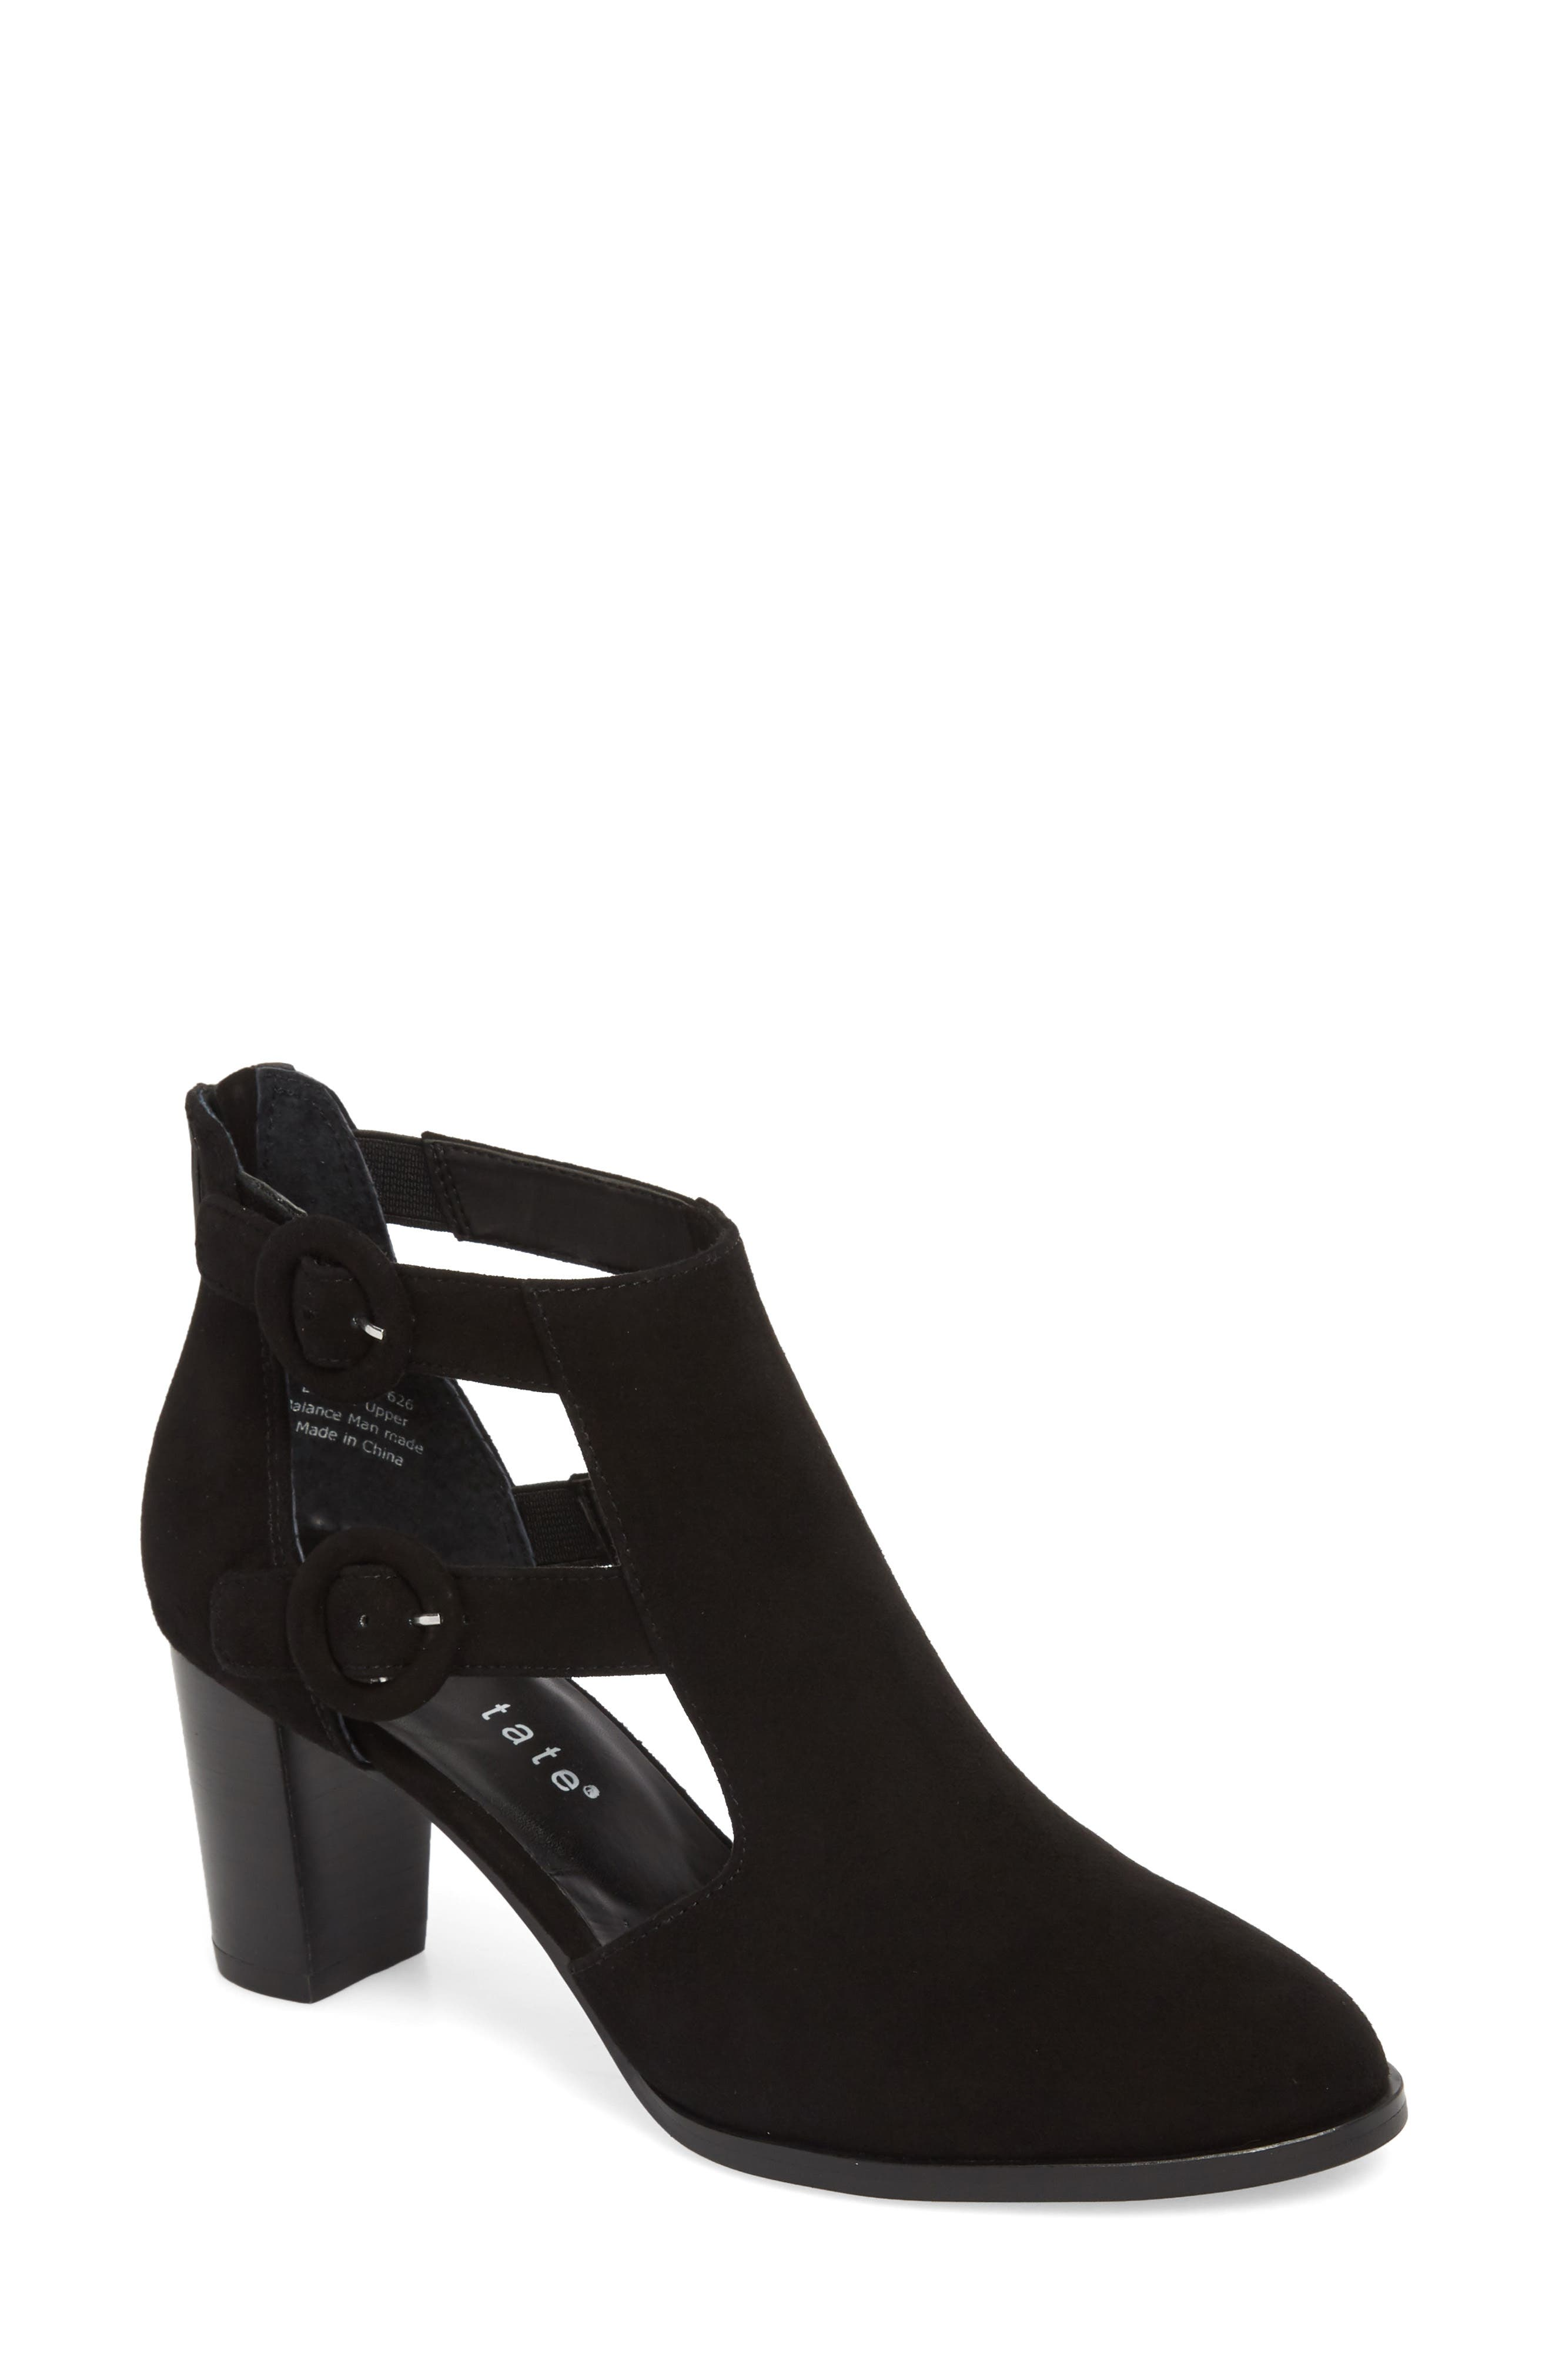 DAVID TATE Exotic Caged Bootie, Main, color, BLACK SUEDE